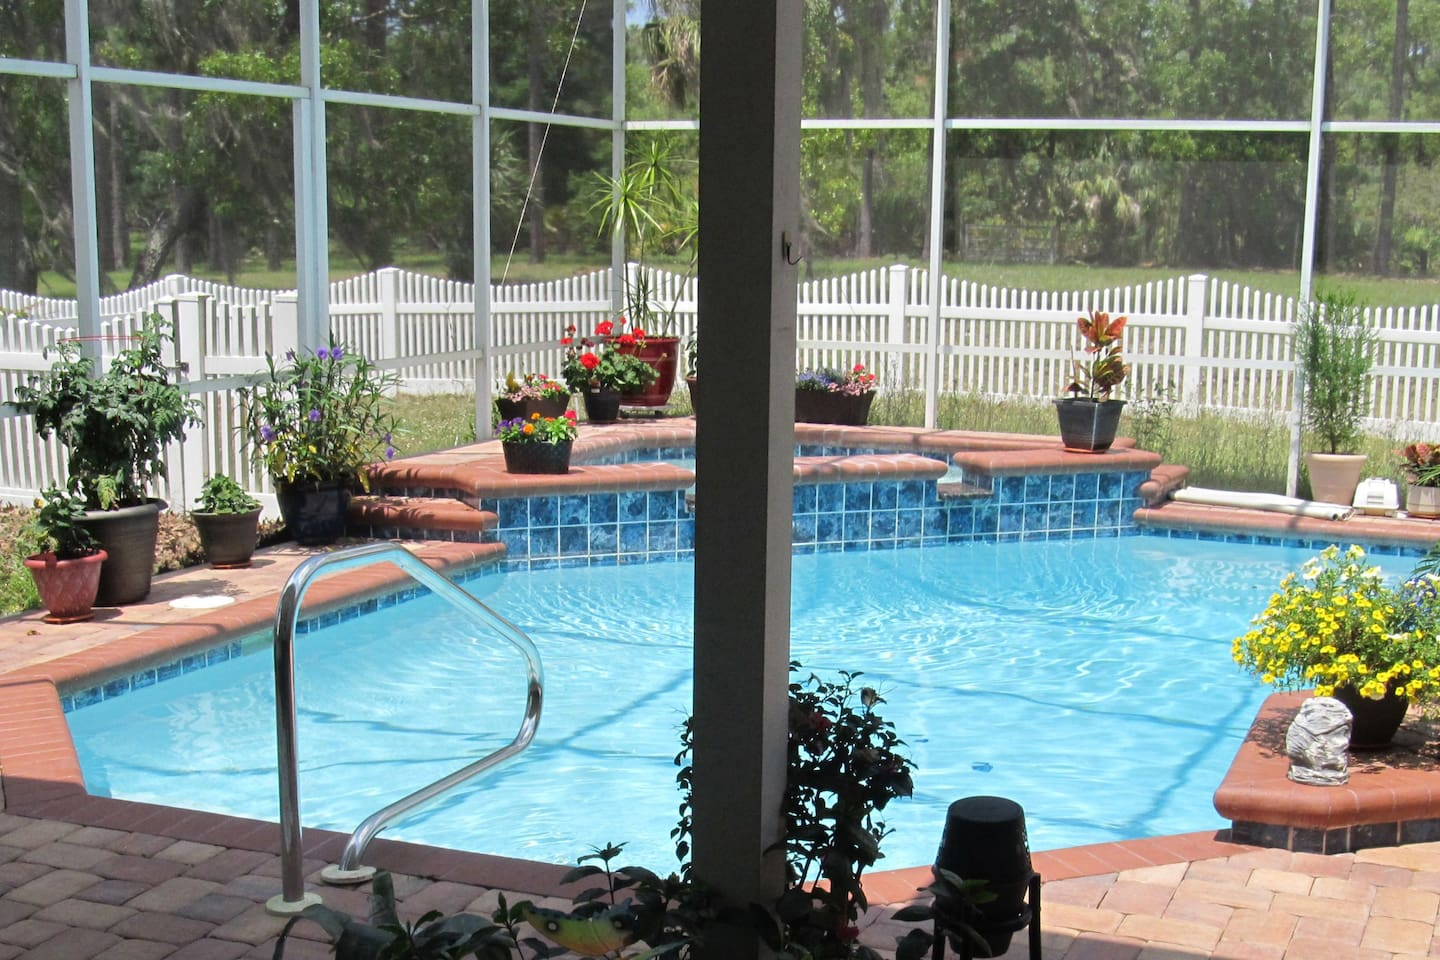 Your private paradise, the pool is 10-feet from your living room door. It is solar heated with warm water unless there is a cold snap. There is a BBQ, table that seats six where you can watch beautiful sunsets.